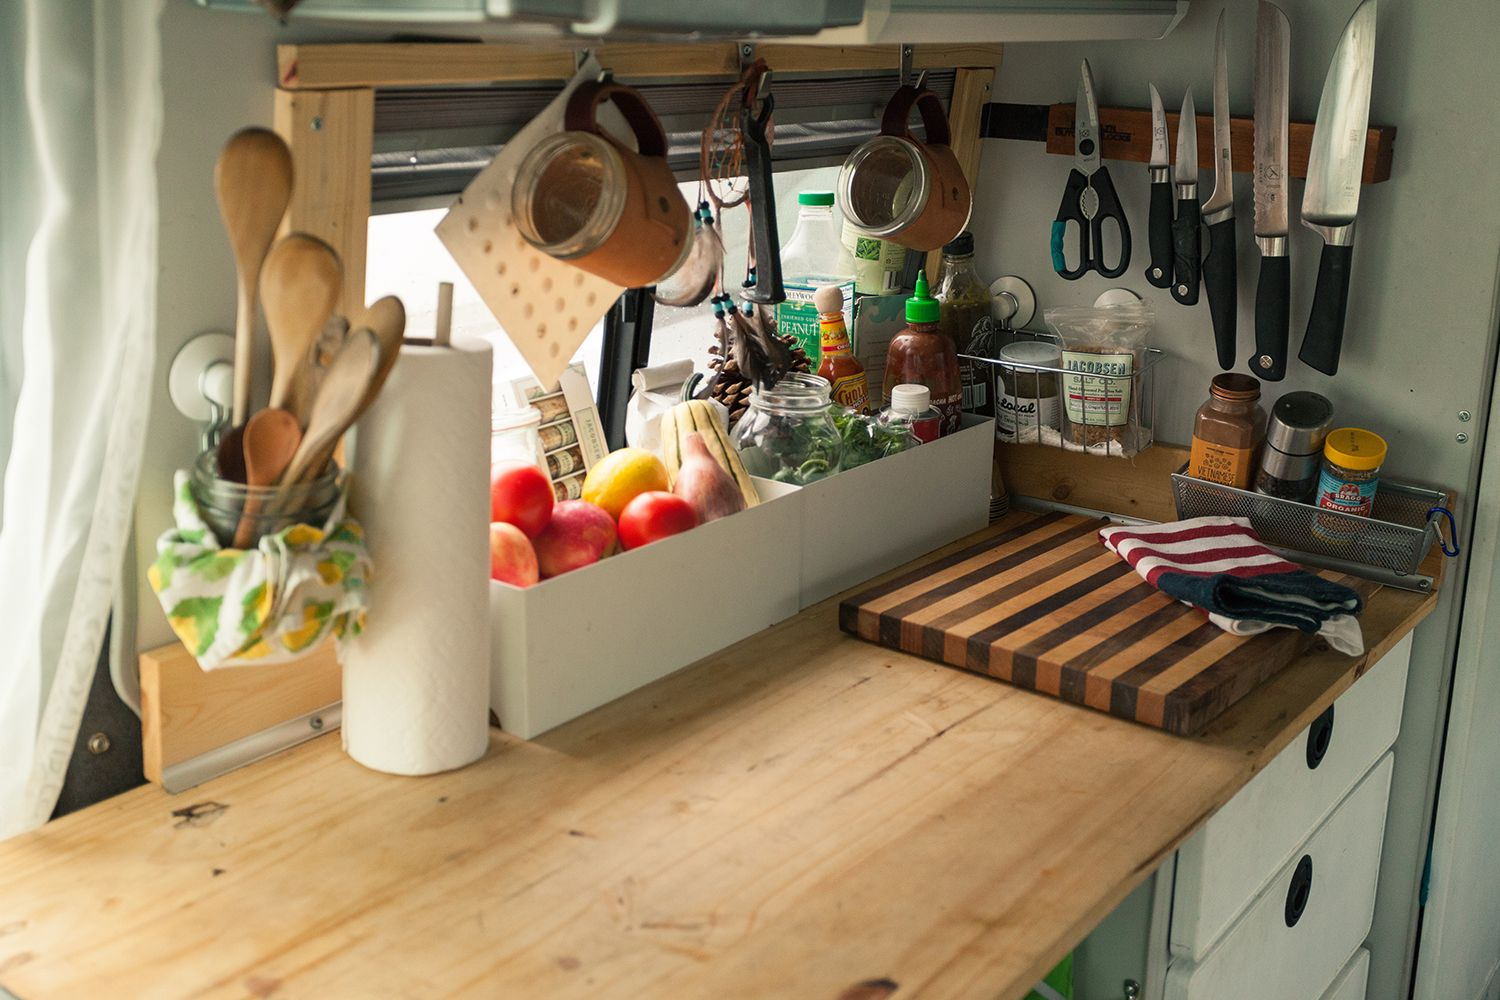 Cooking in Small Spaces | Small spaces and Van life